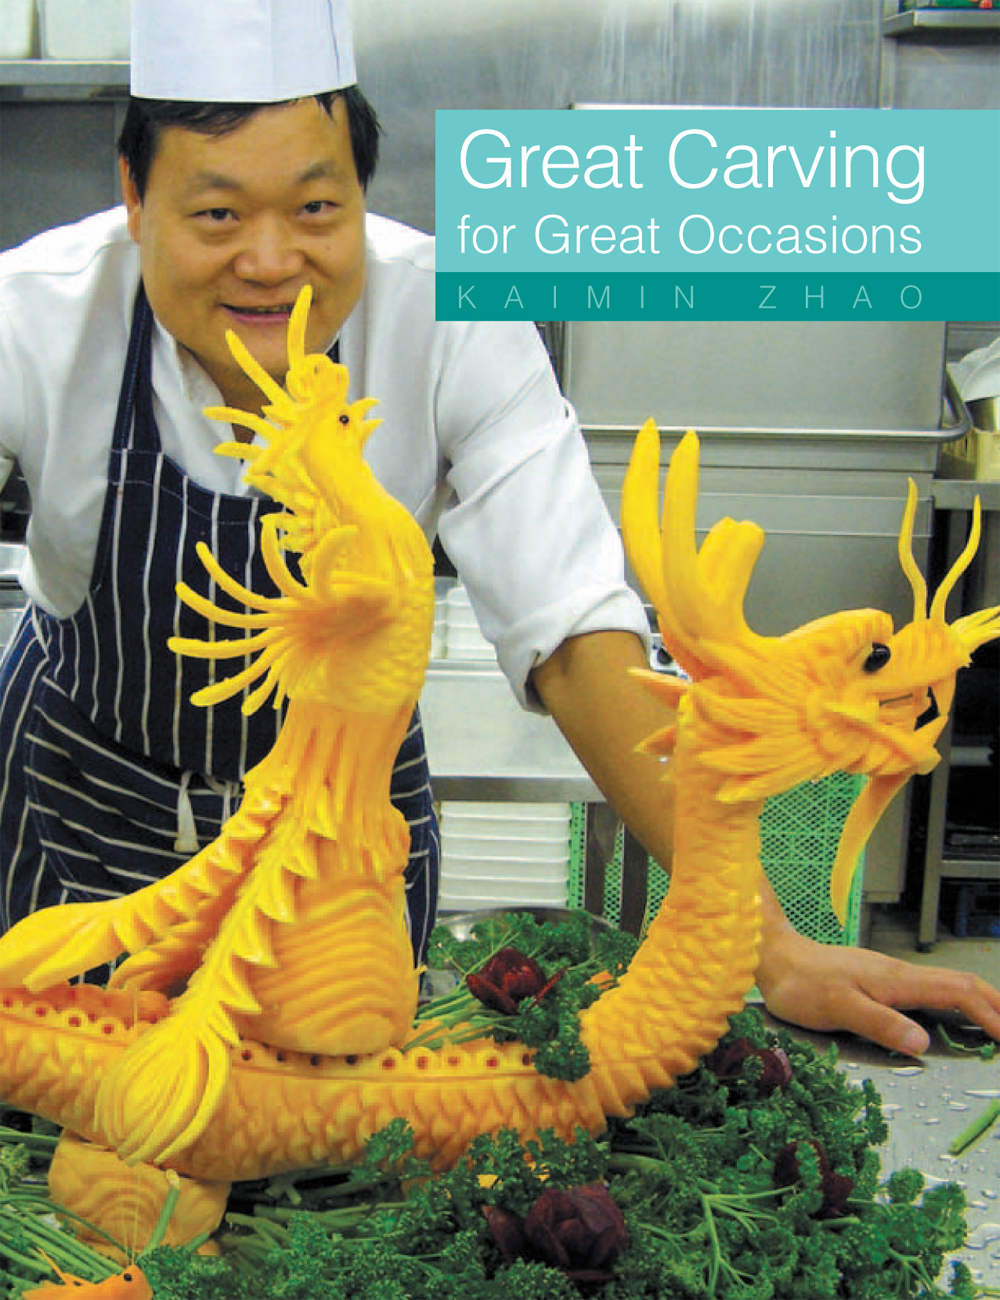 Great Carving for Great Occasions By: KaiMin Zhao